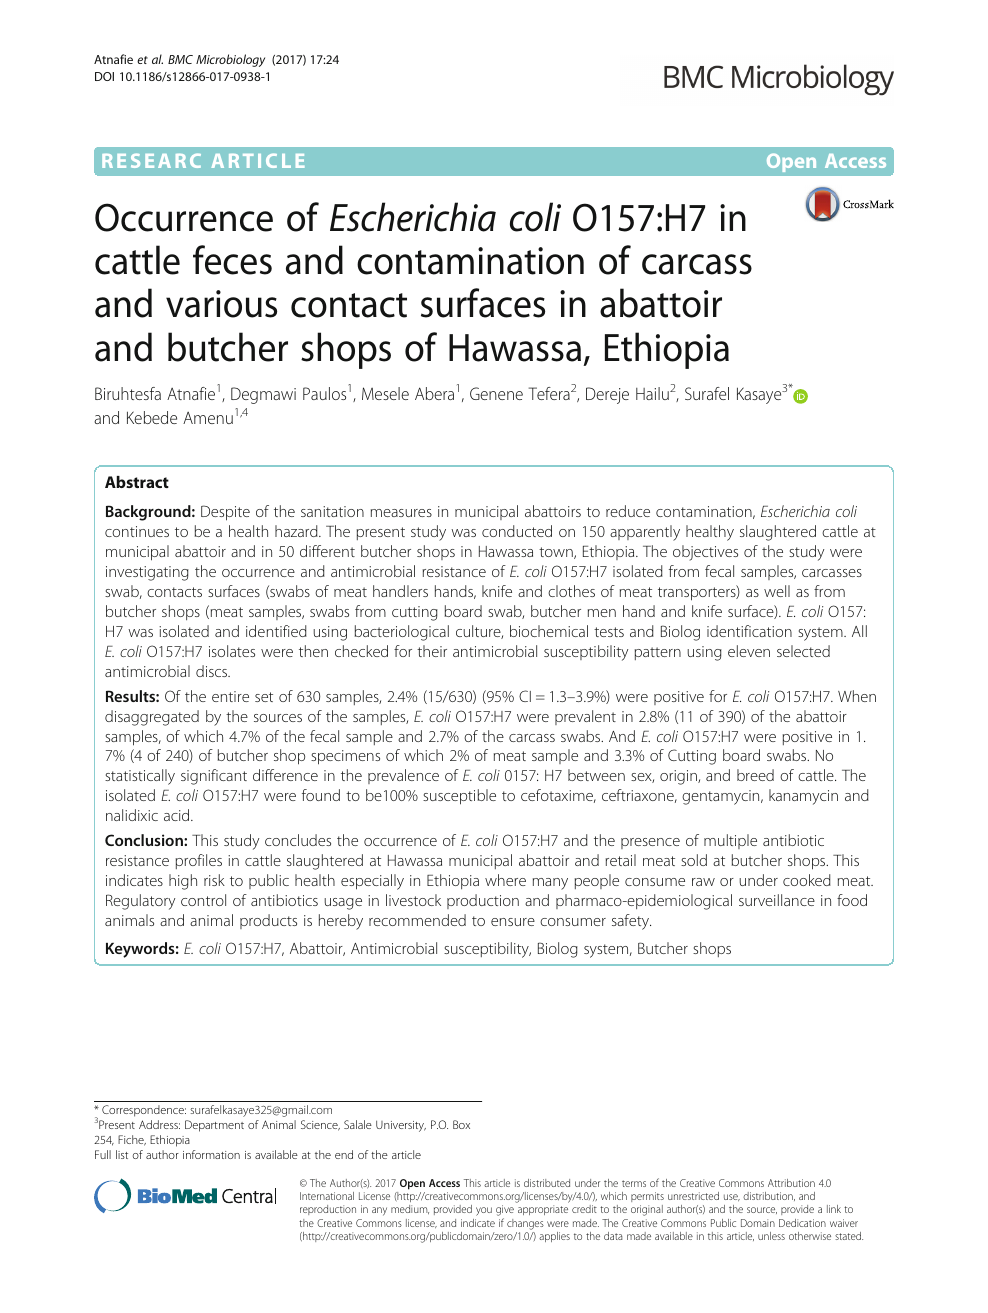 Occurrence of Escherichia coli O157:H7 in cattle feces and